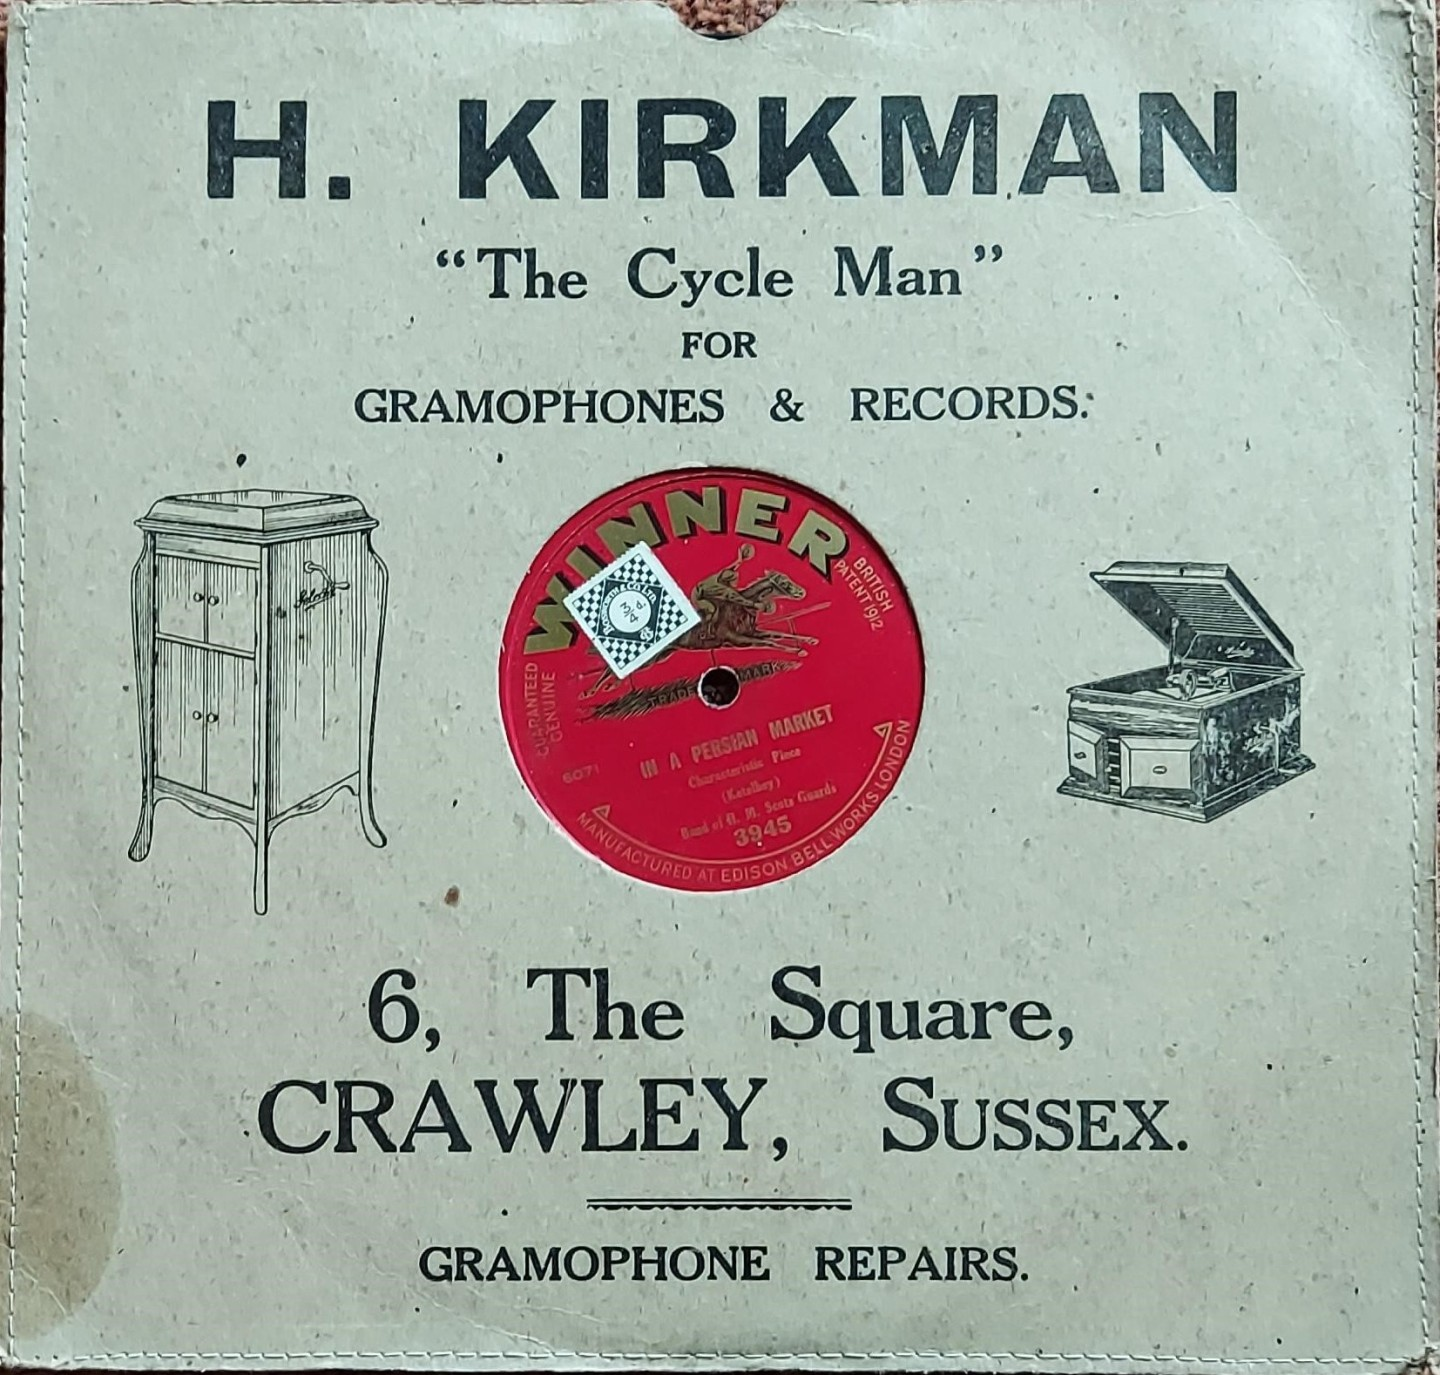 Crawley record